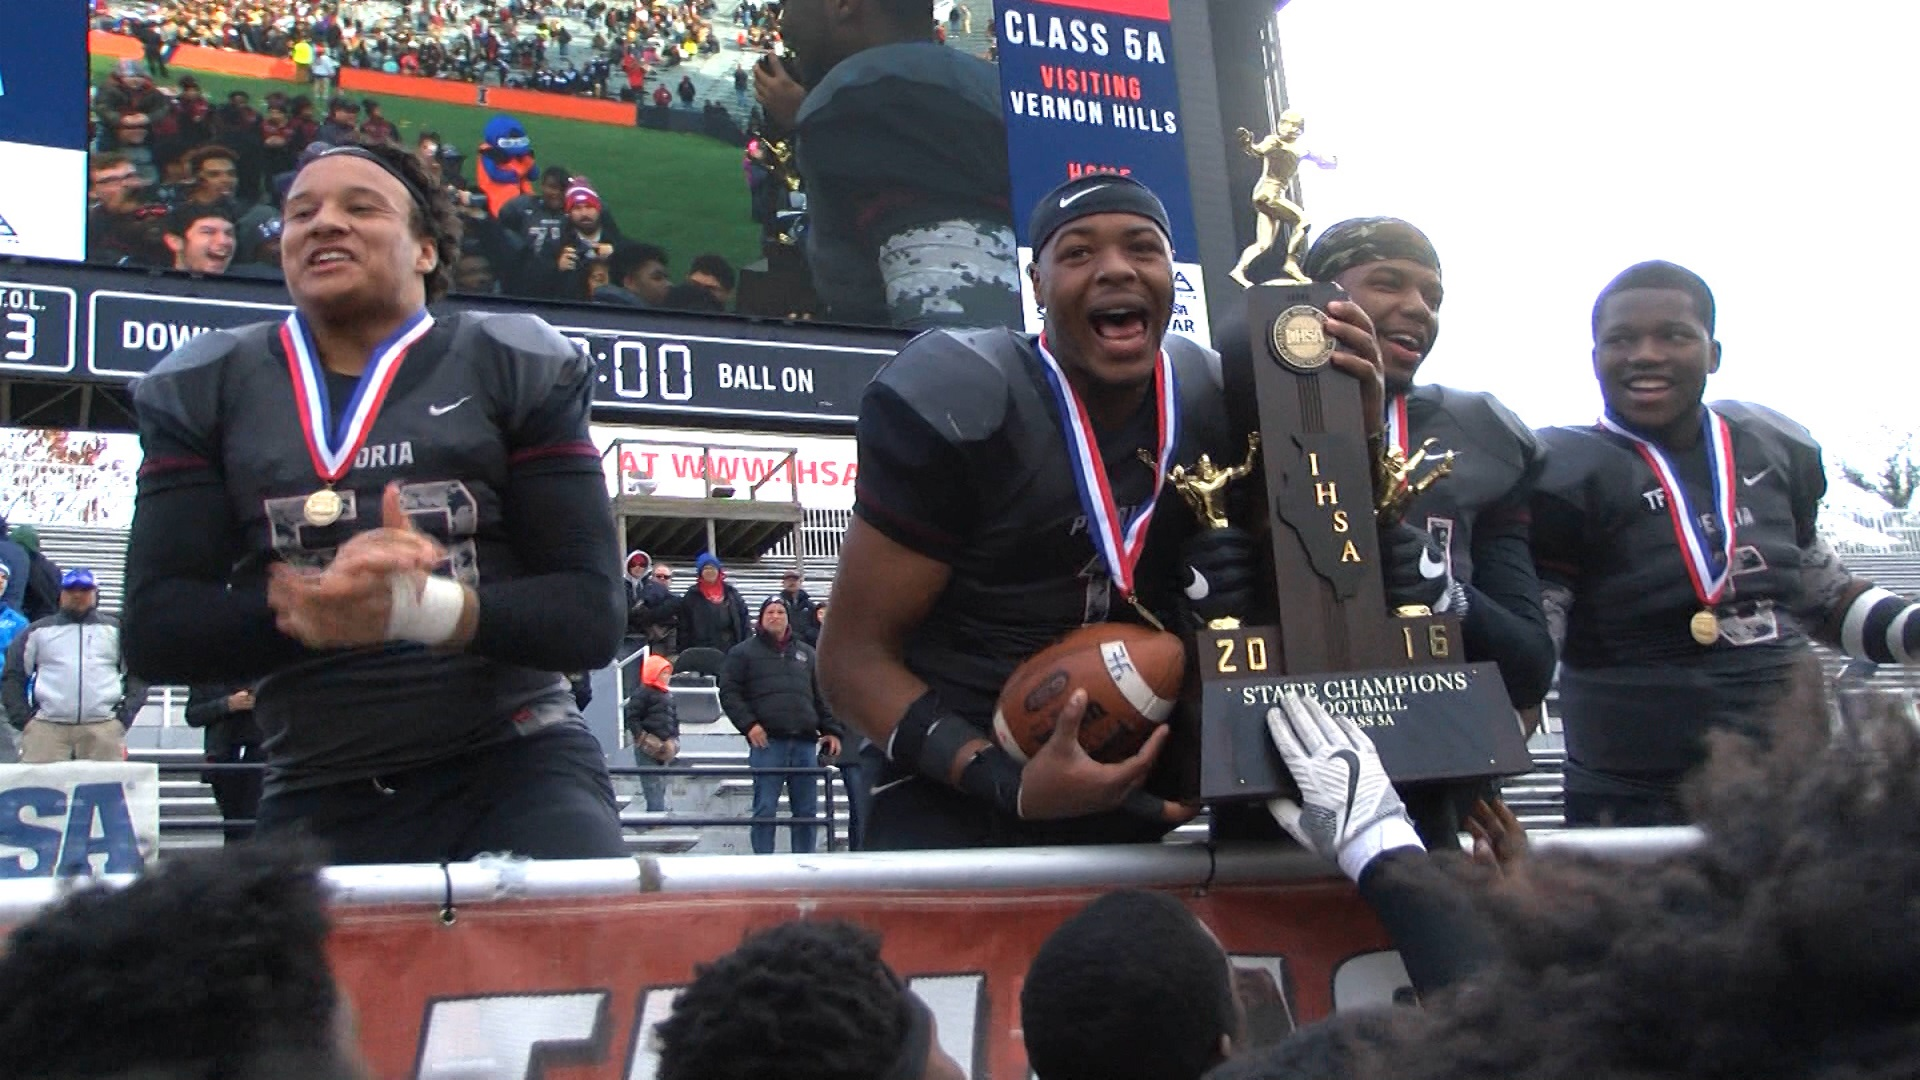 Peoria High wins first state championship